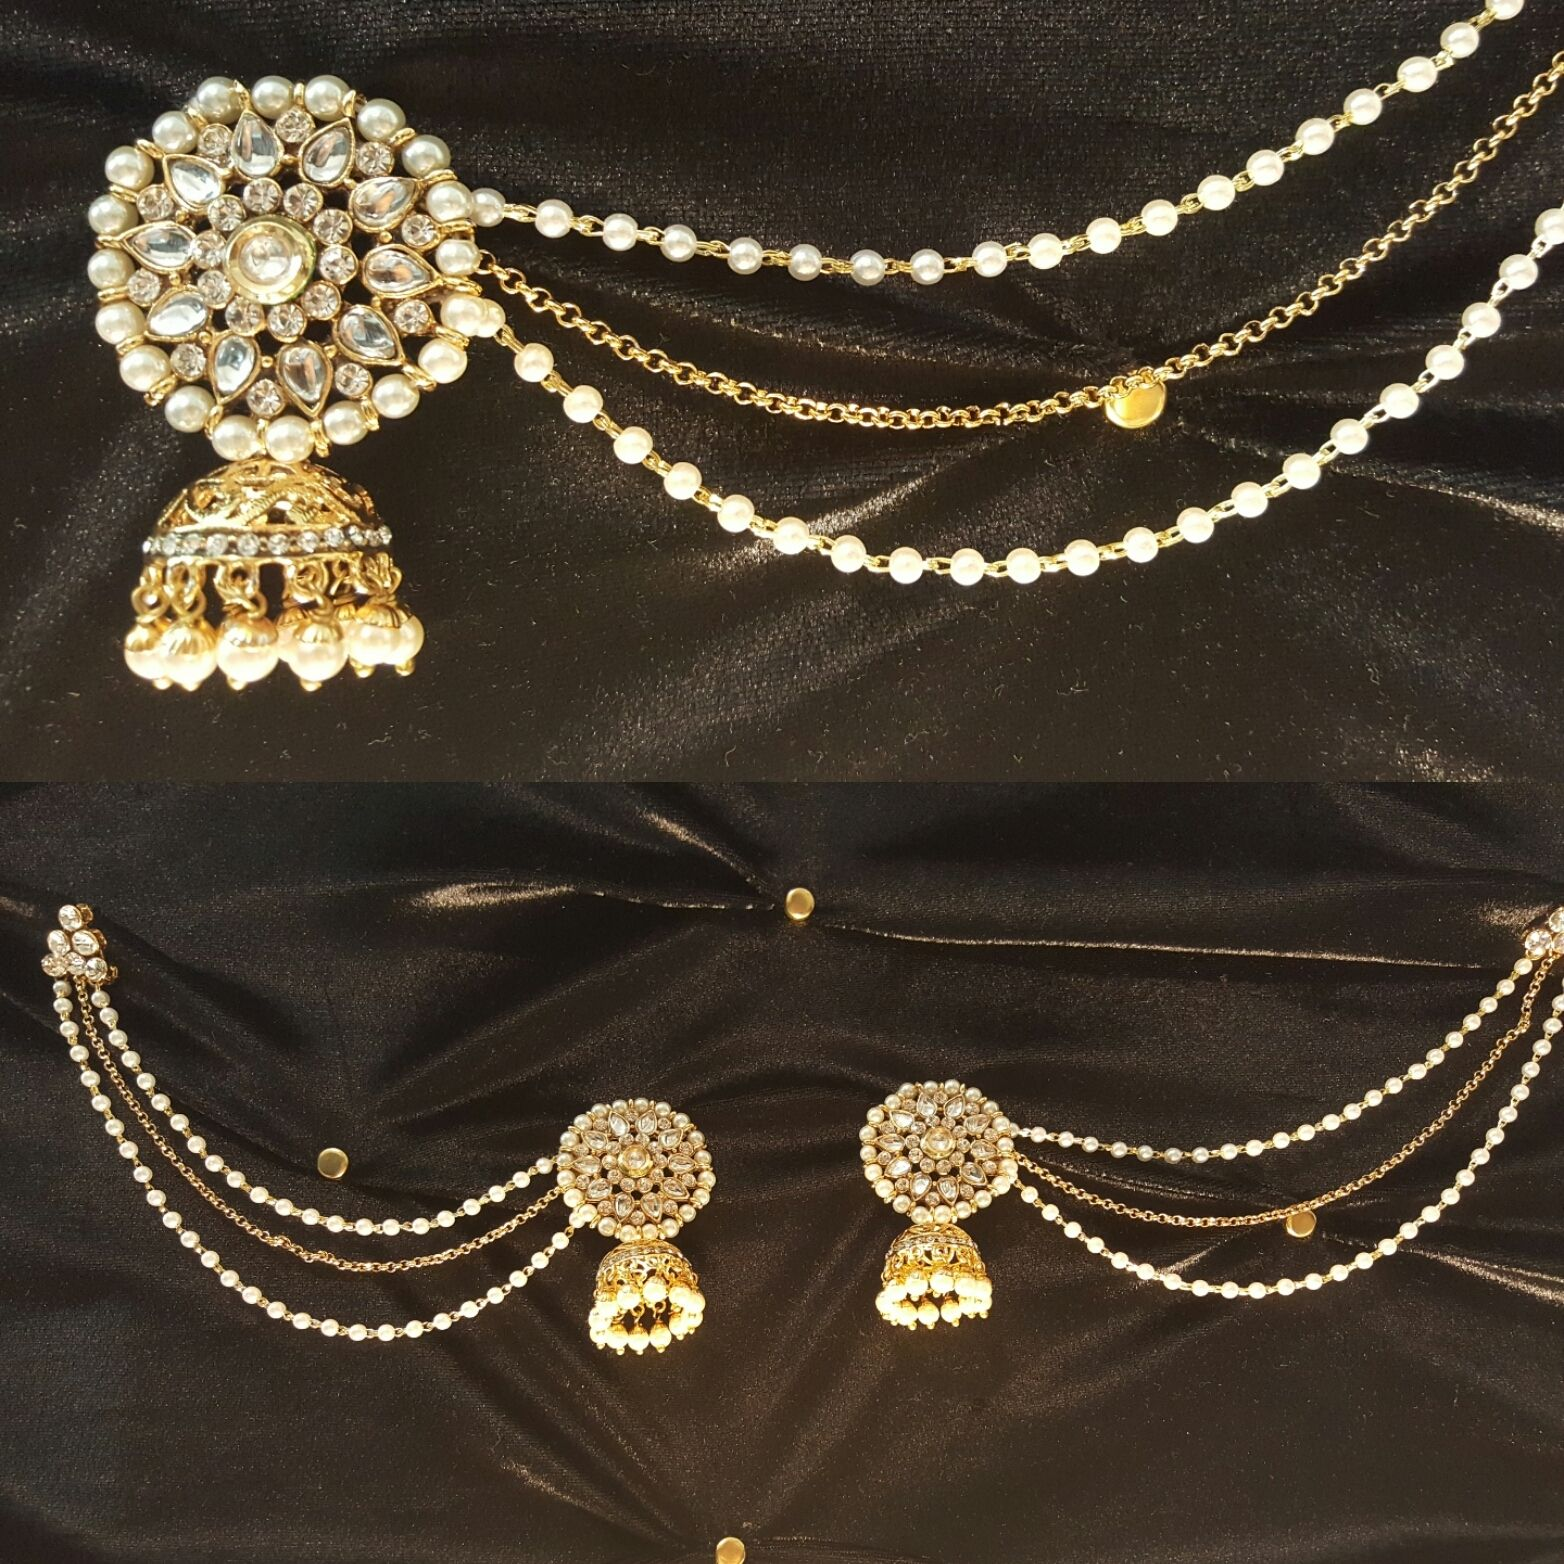 Earring set | Real pearls, Chains and Pearls